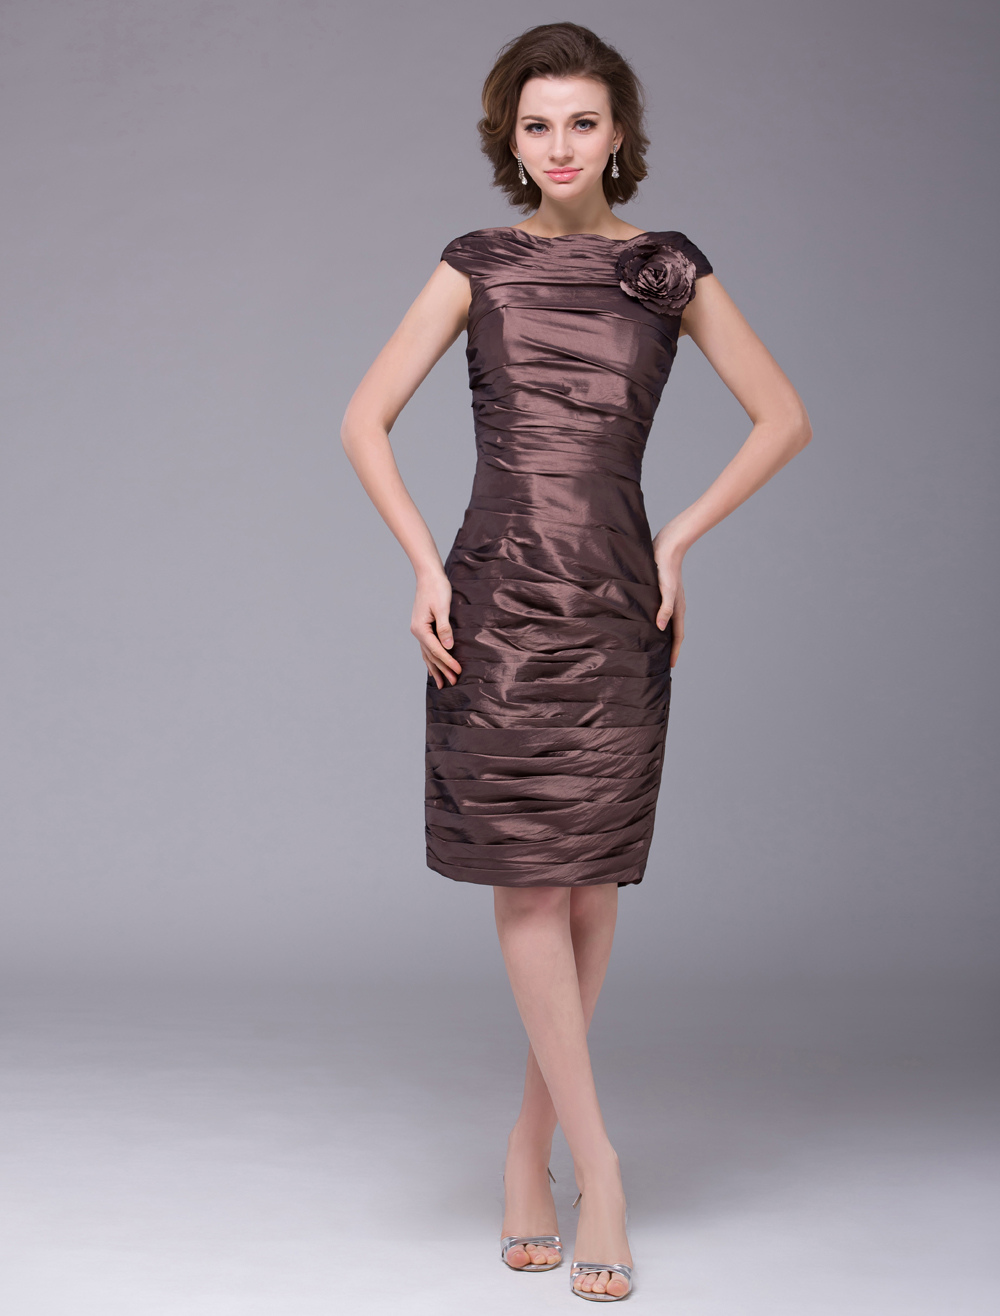 Brown Sheath Flower Taffeta Charming Fashion Mother of the Bride Dress Wedding Guest Dress